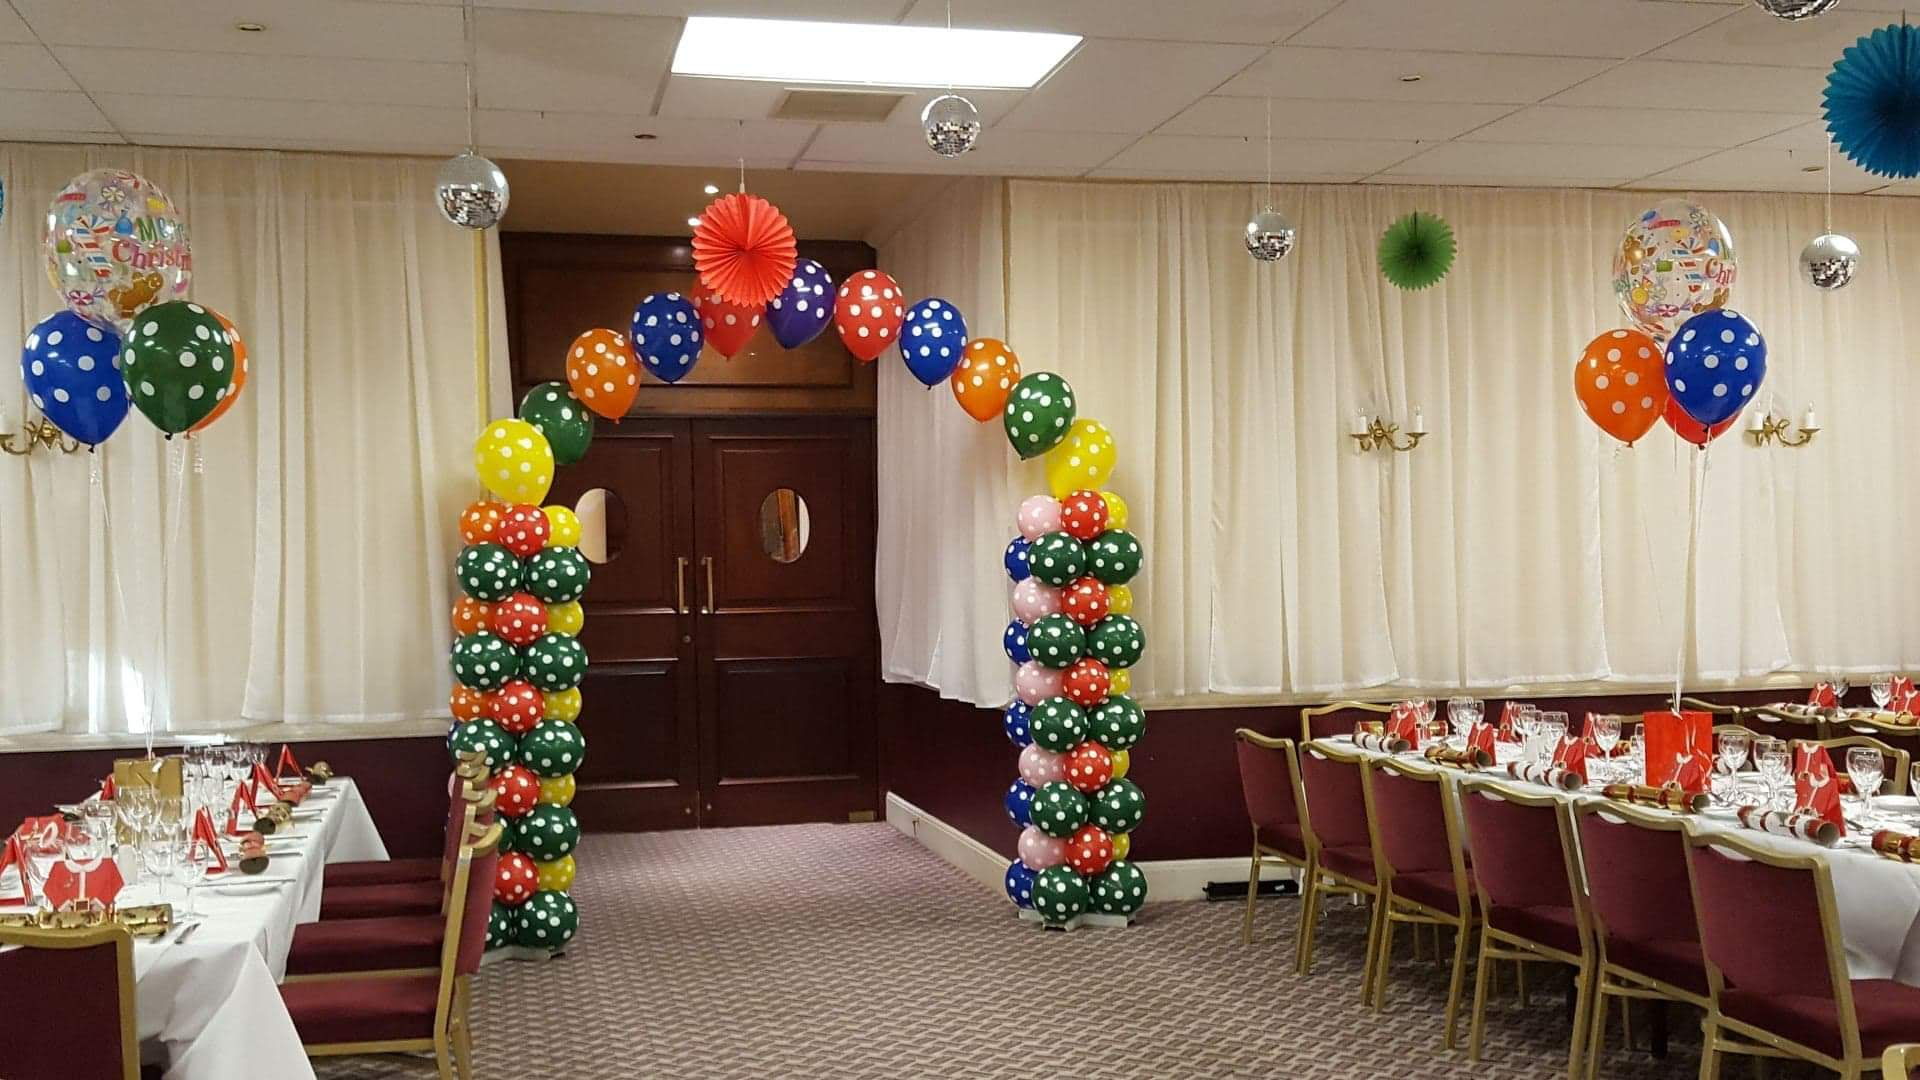 Polka Dot themed Balloon Arch